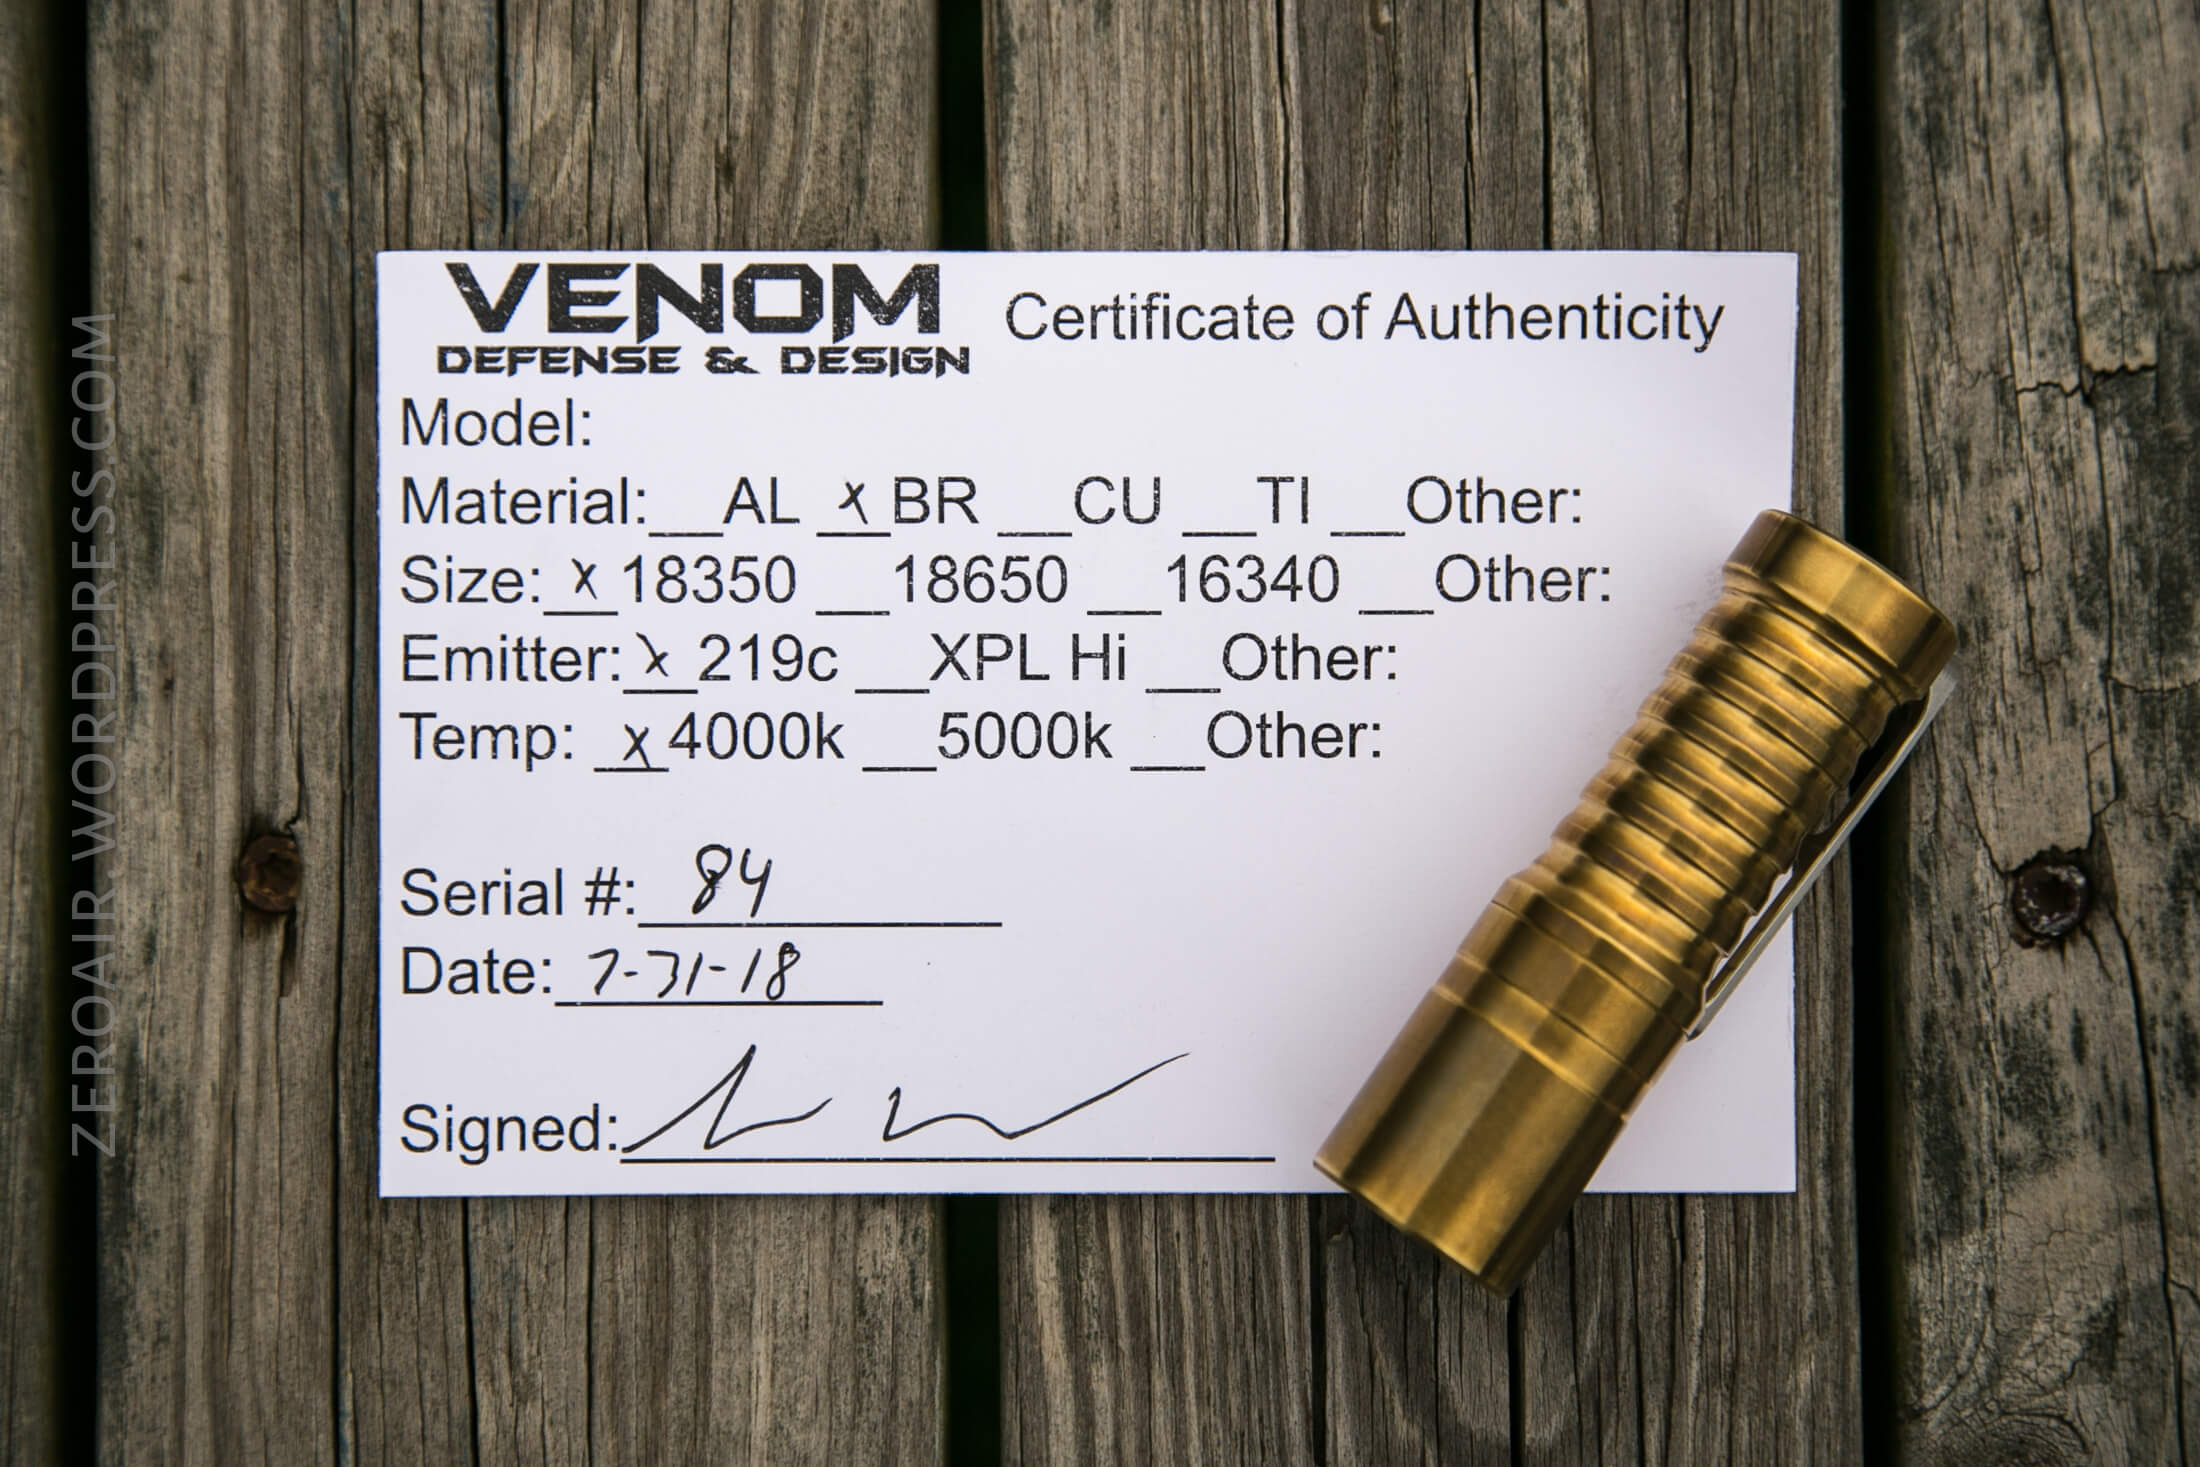 zeroair_reviews_venom_orion_brass_nichia_06.jpg